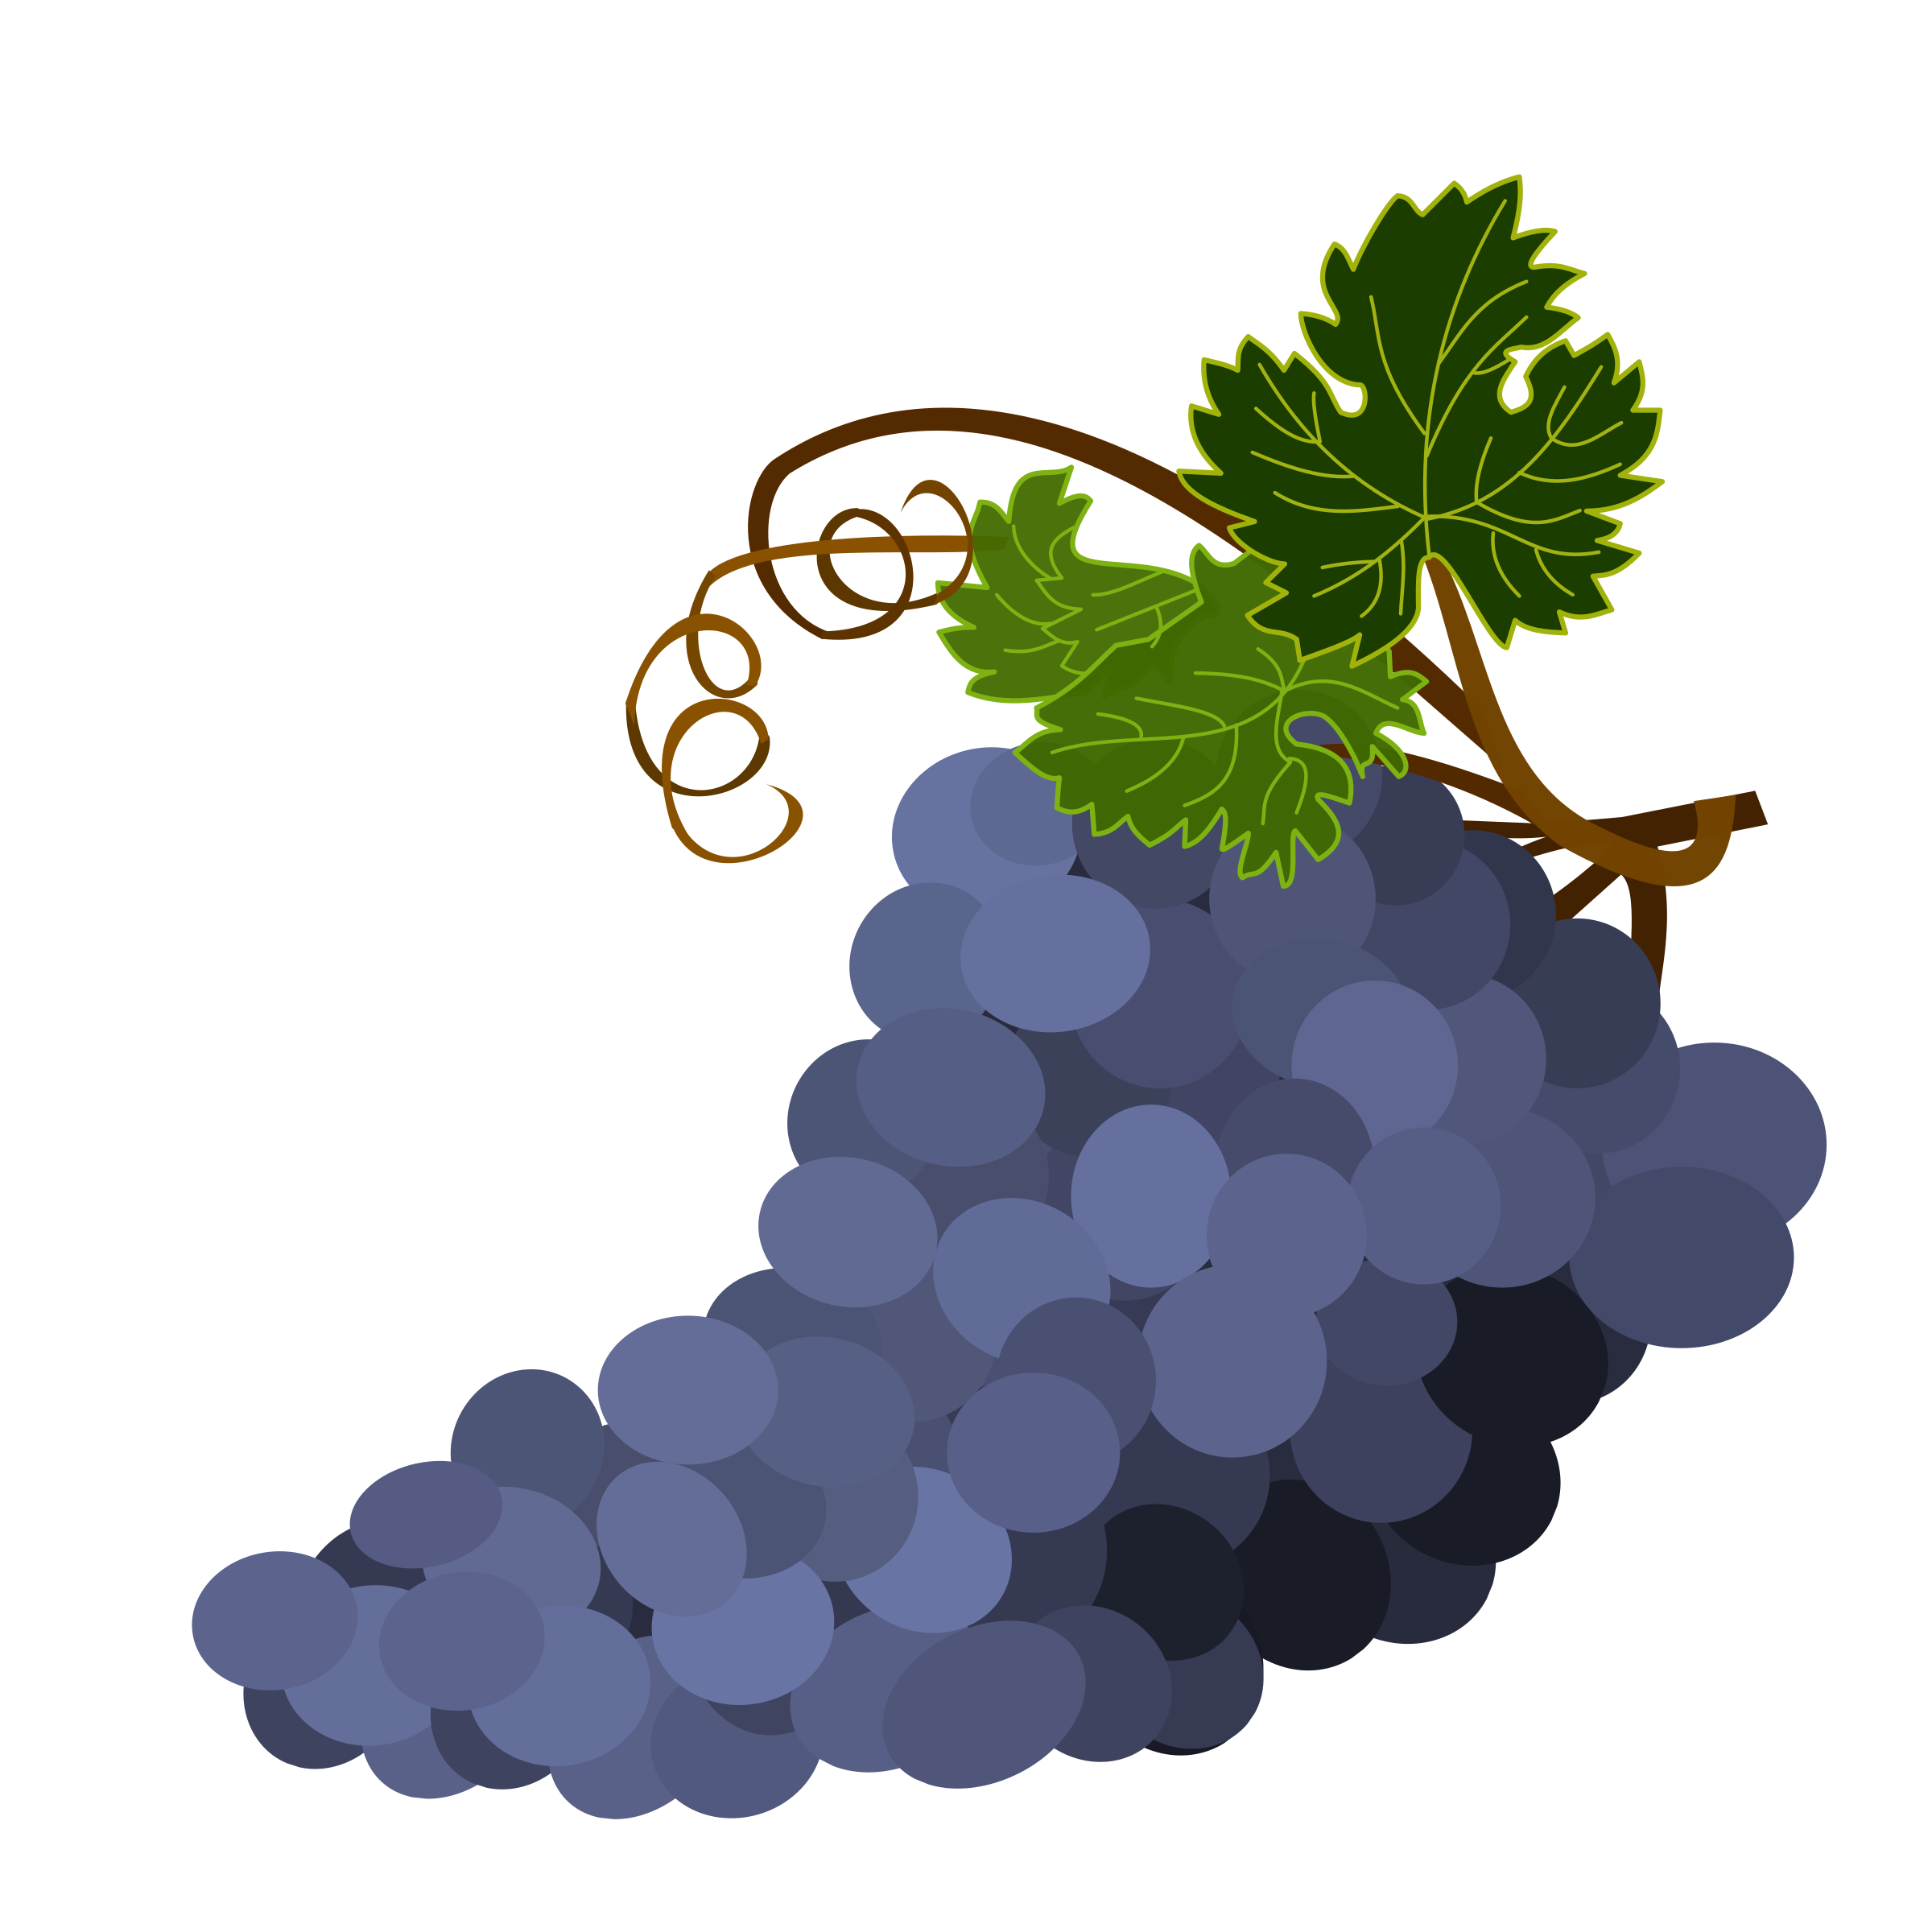 Purple Grapes by m.berkancetin